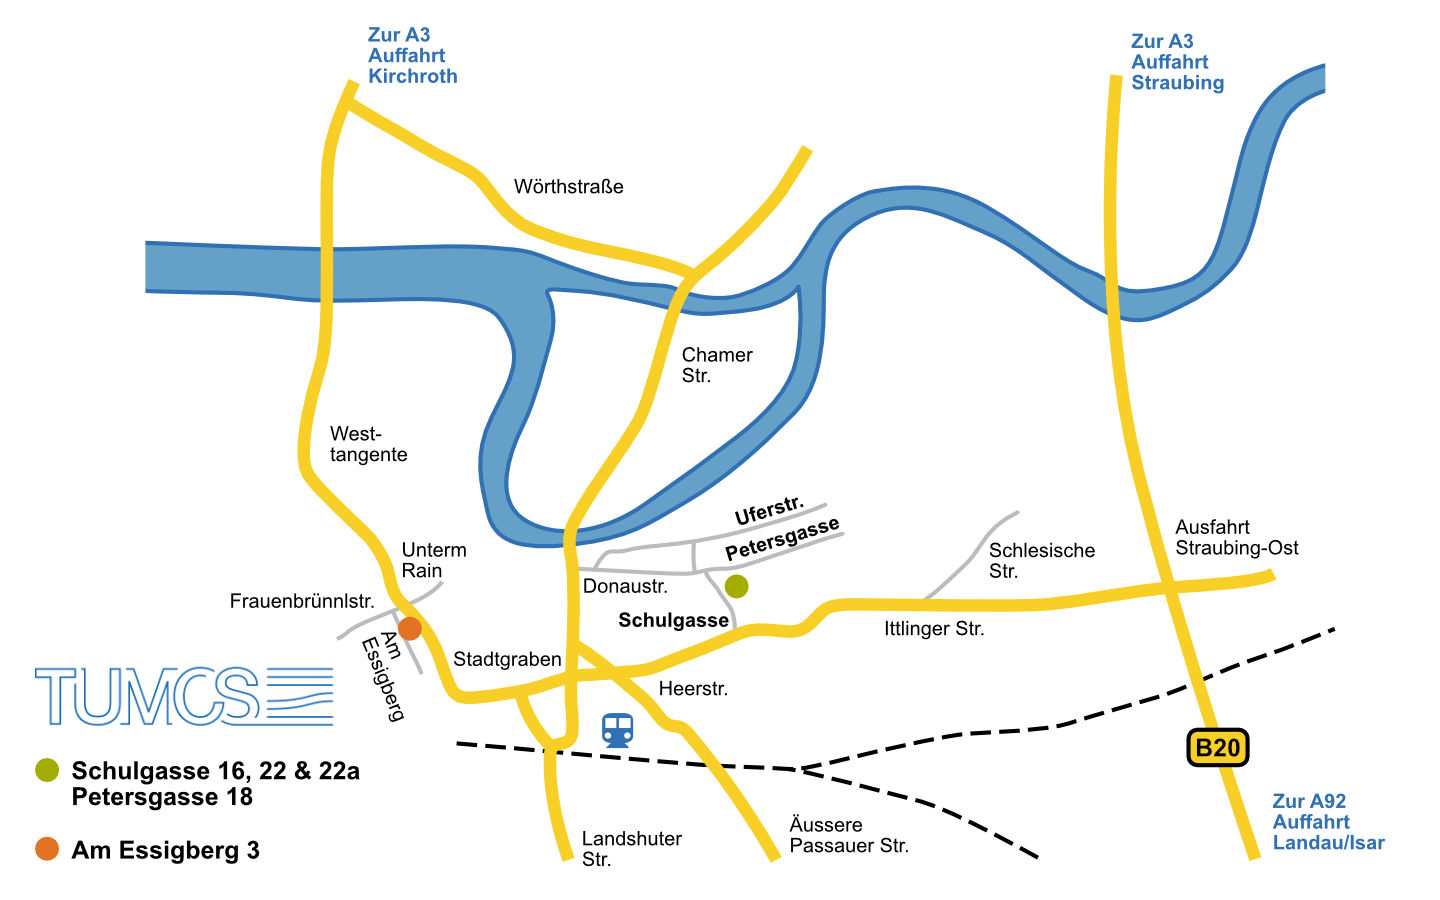 Schematic map of Straubing with the different locations of the TUMCS